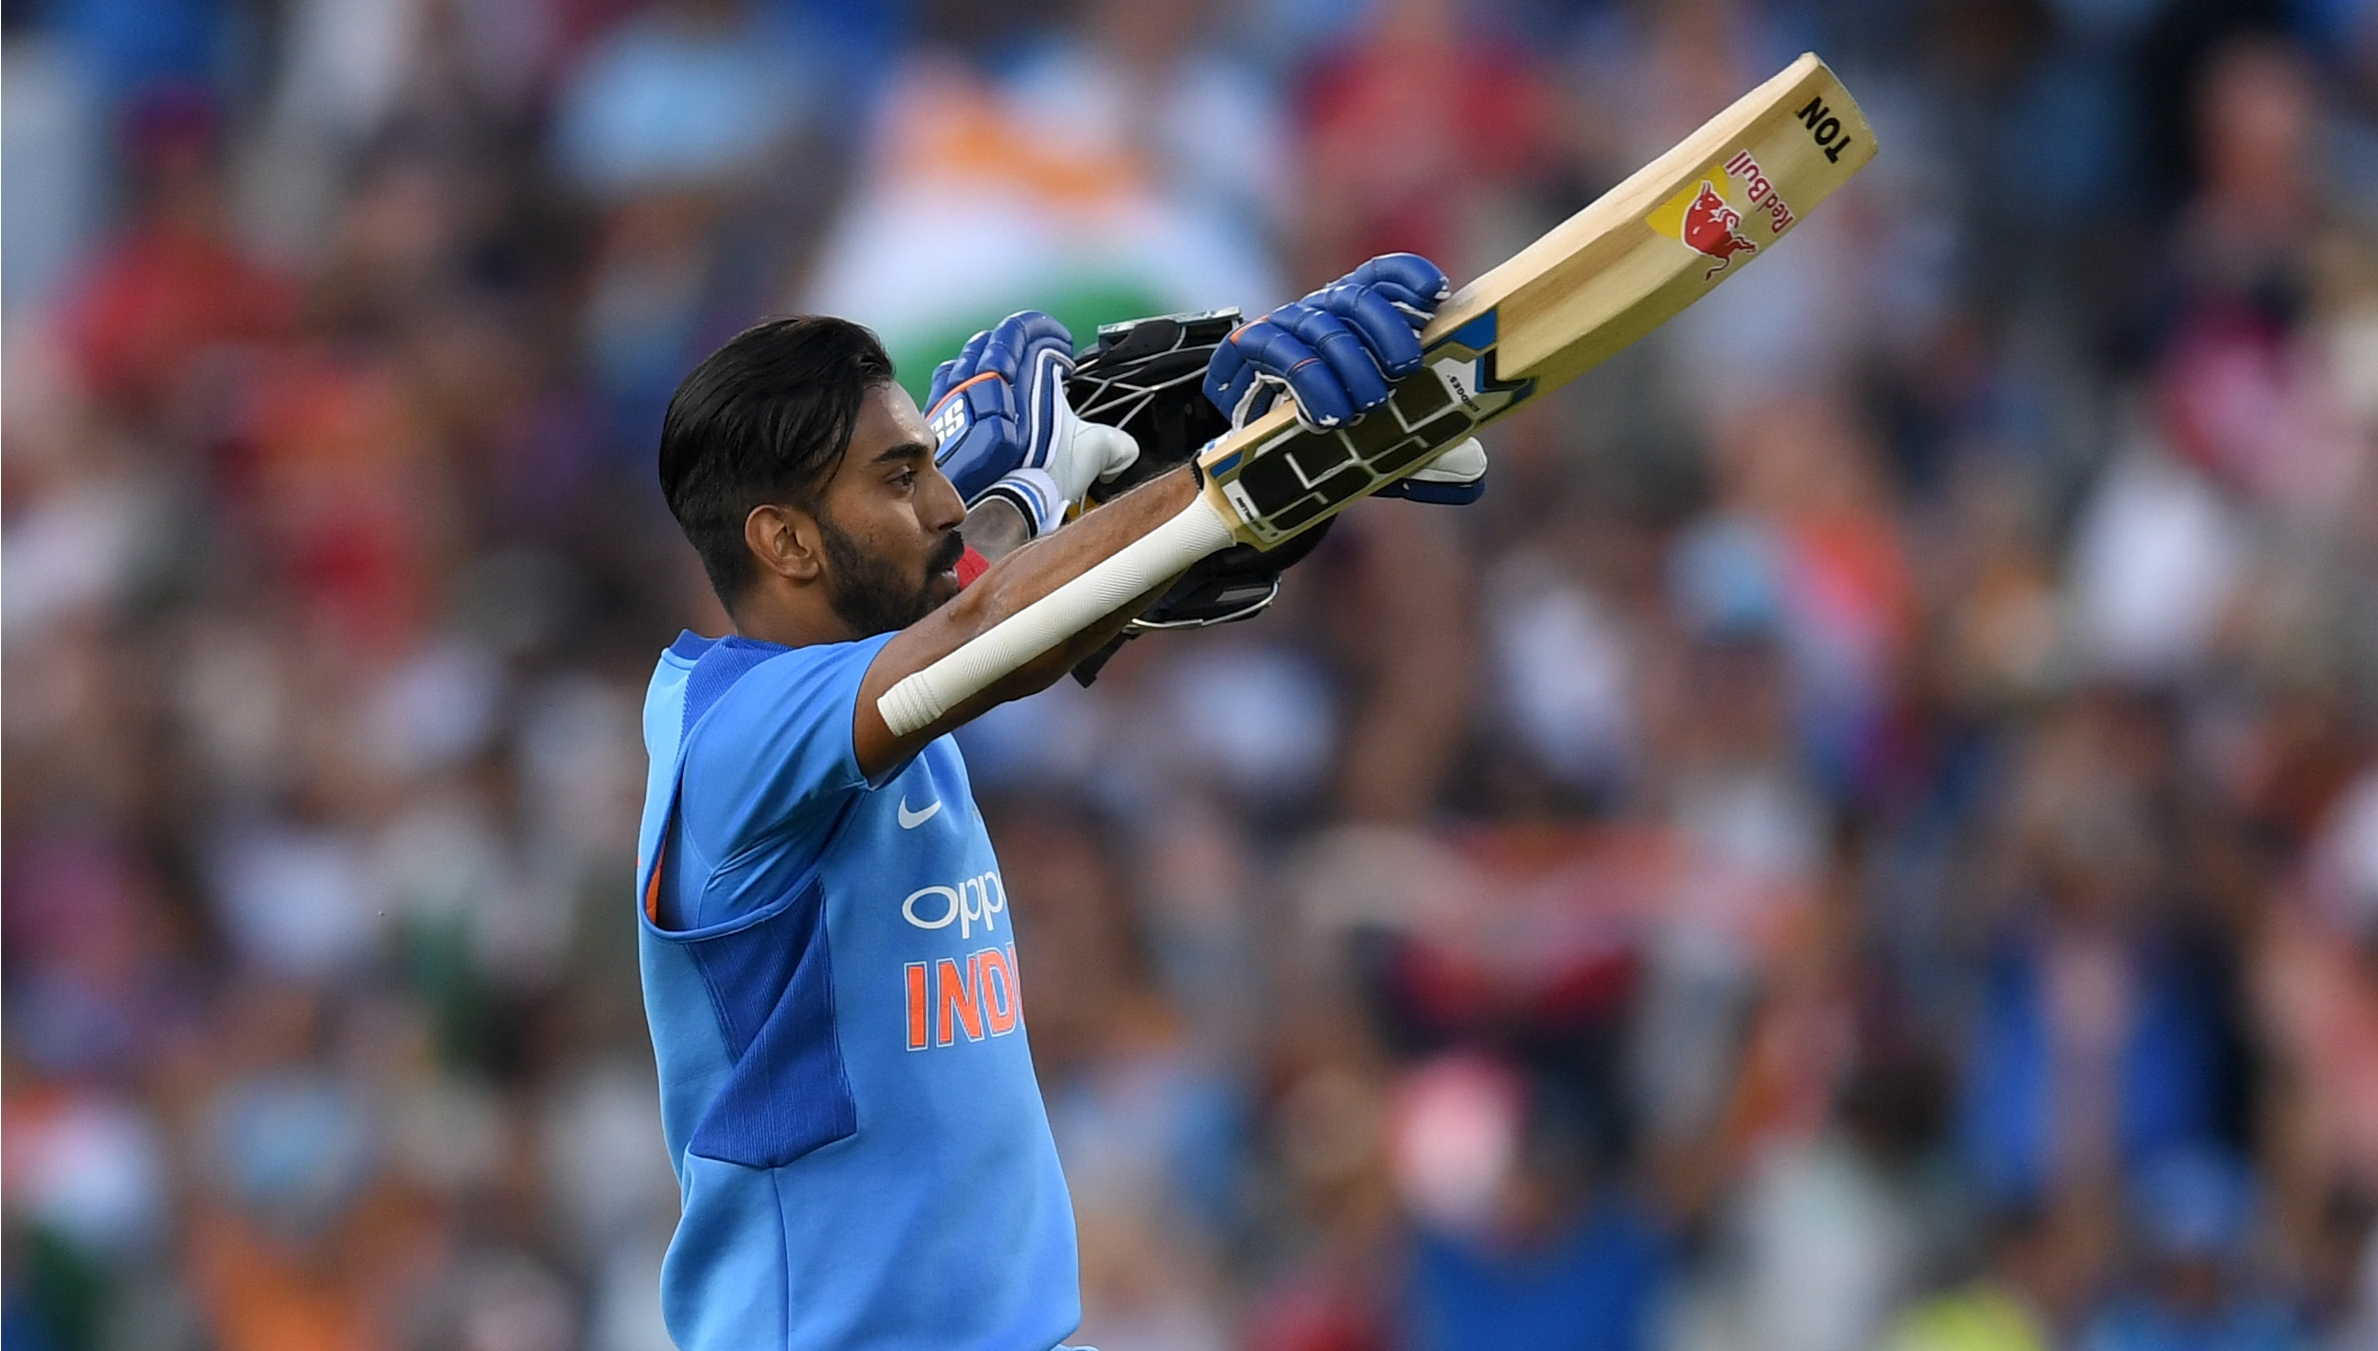 Cricket News: KL Rahul Hopes He's Rediscovered His Form As